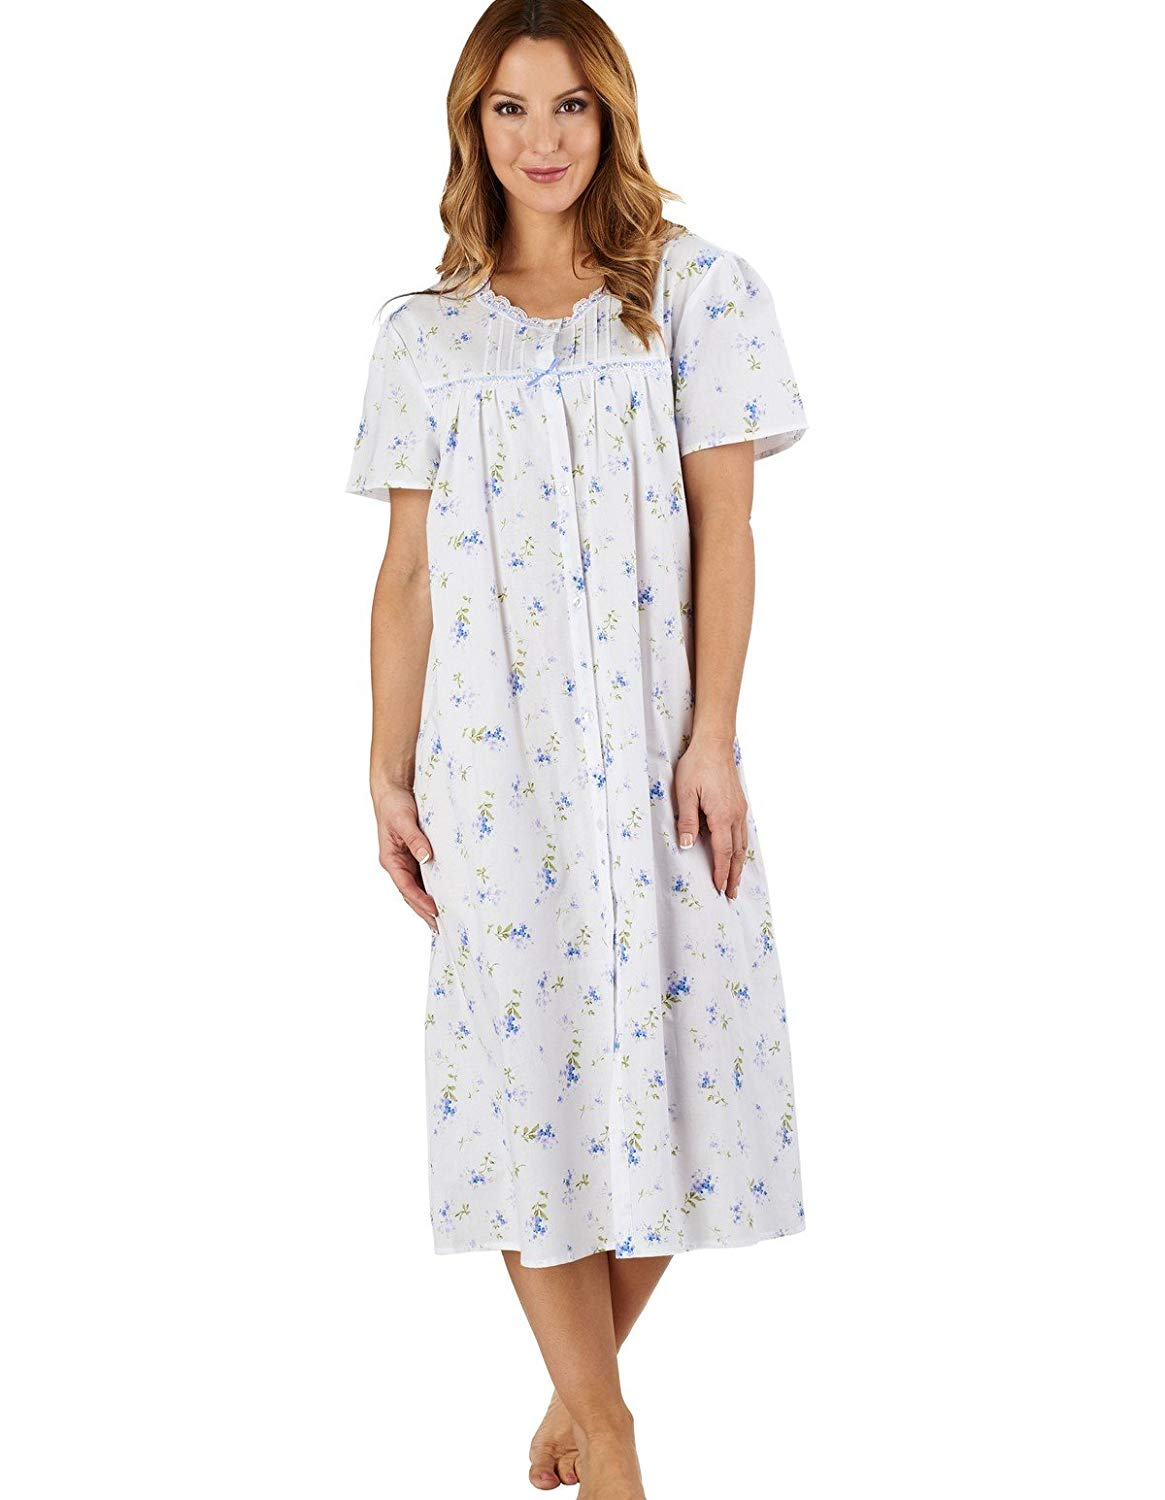 8915496ec081 Get Quotations · Slenderella ND1208 Women's Floral Blue 100% Cotton Night  Gown Nightdress